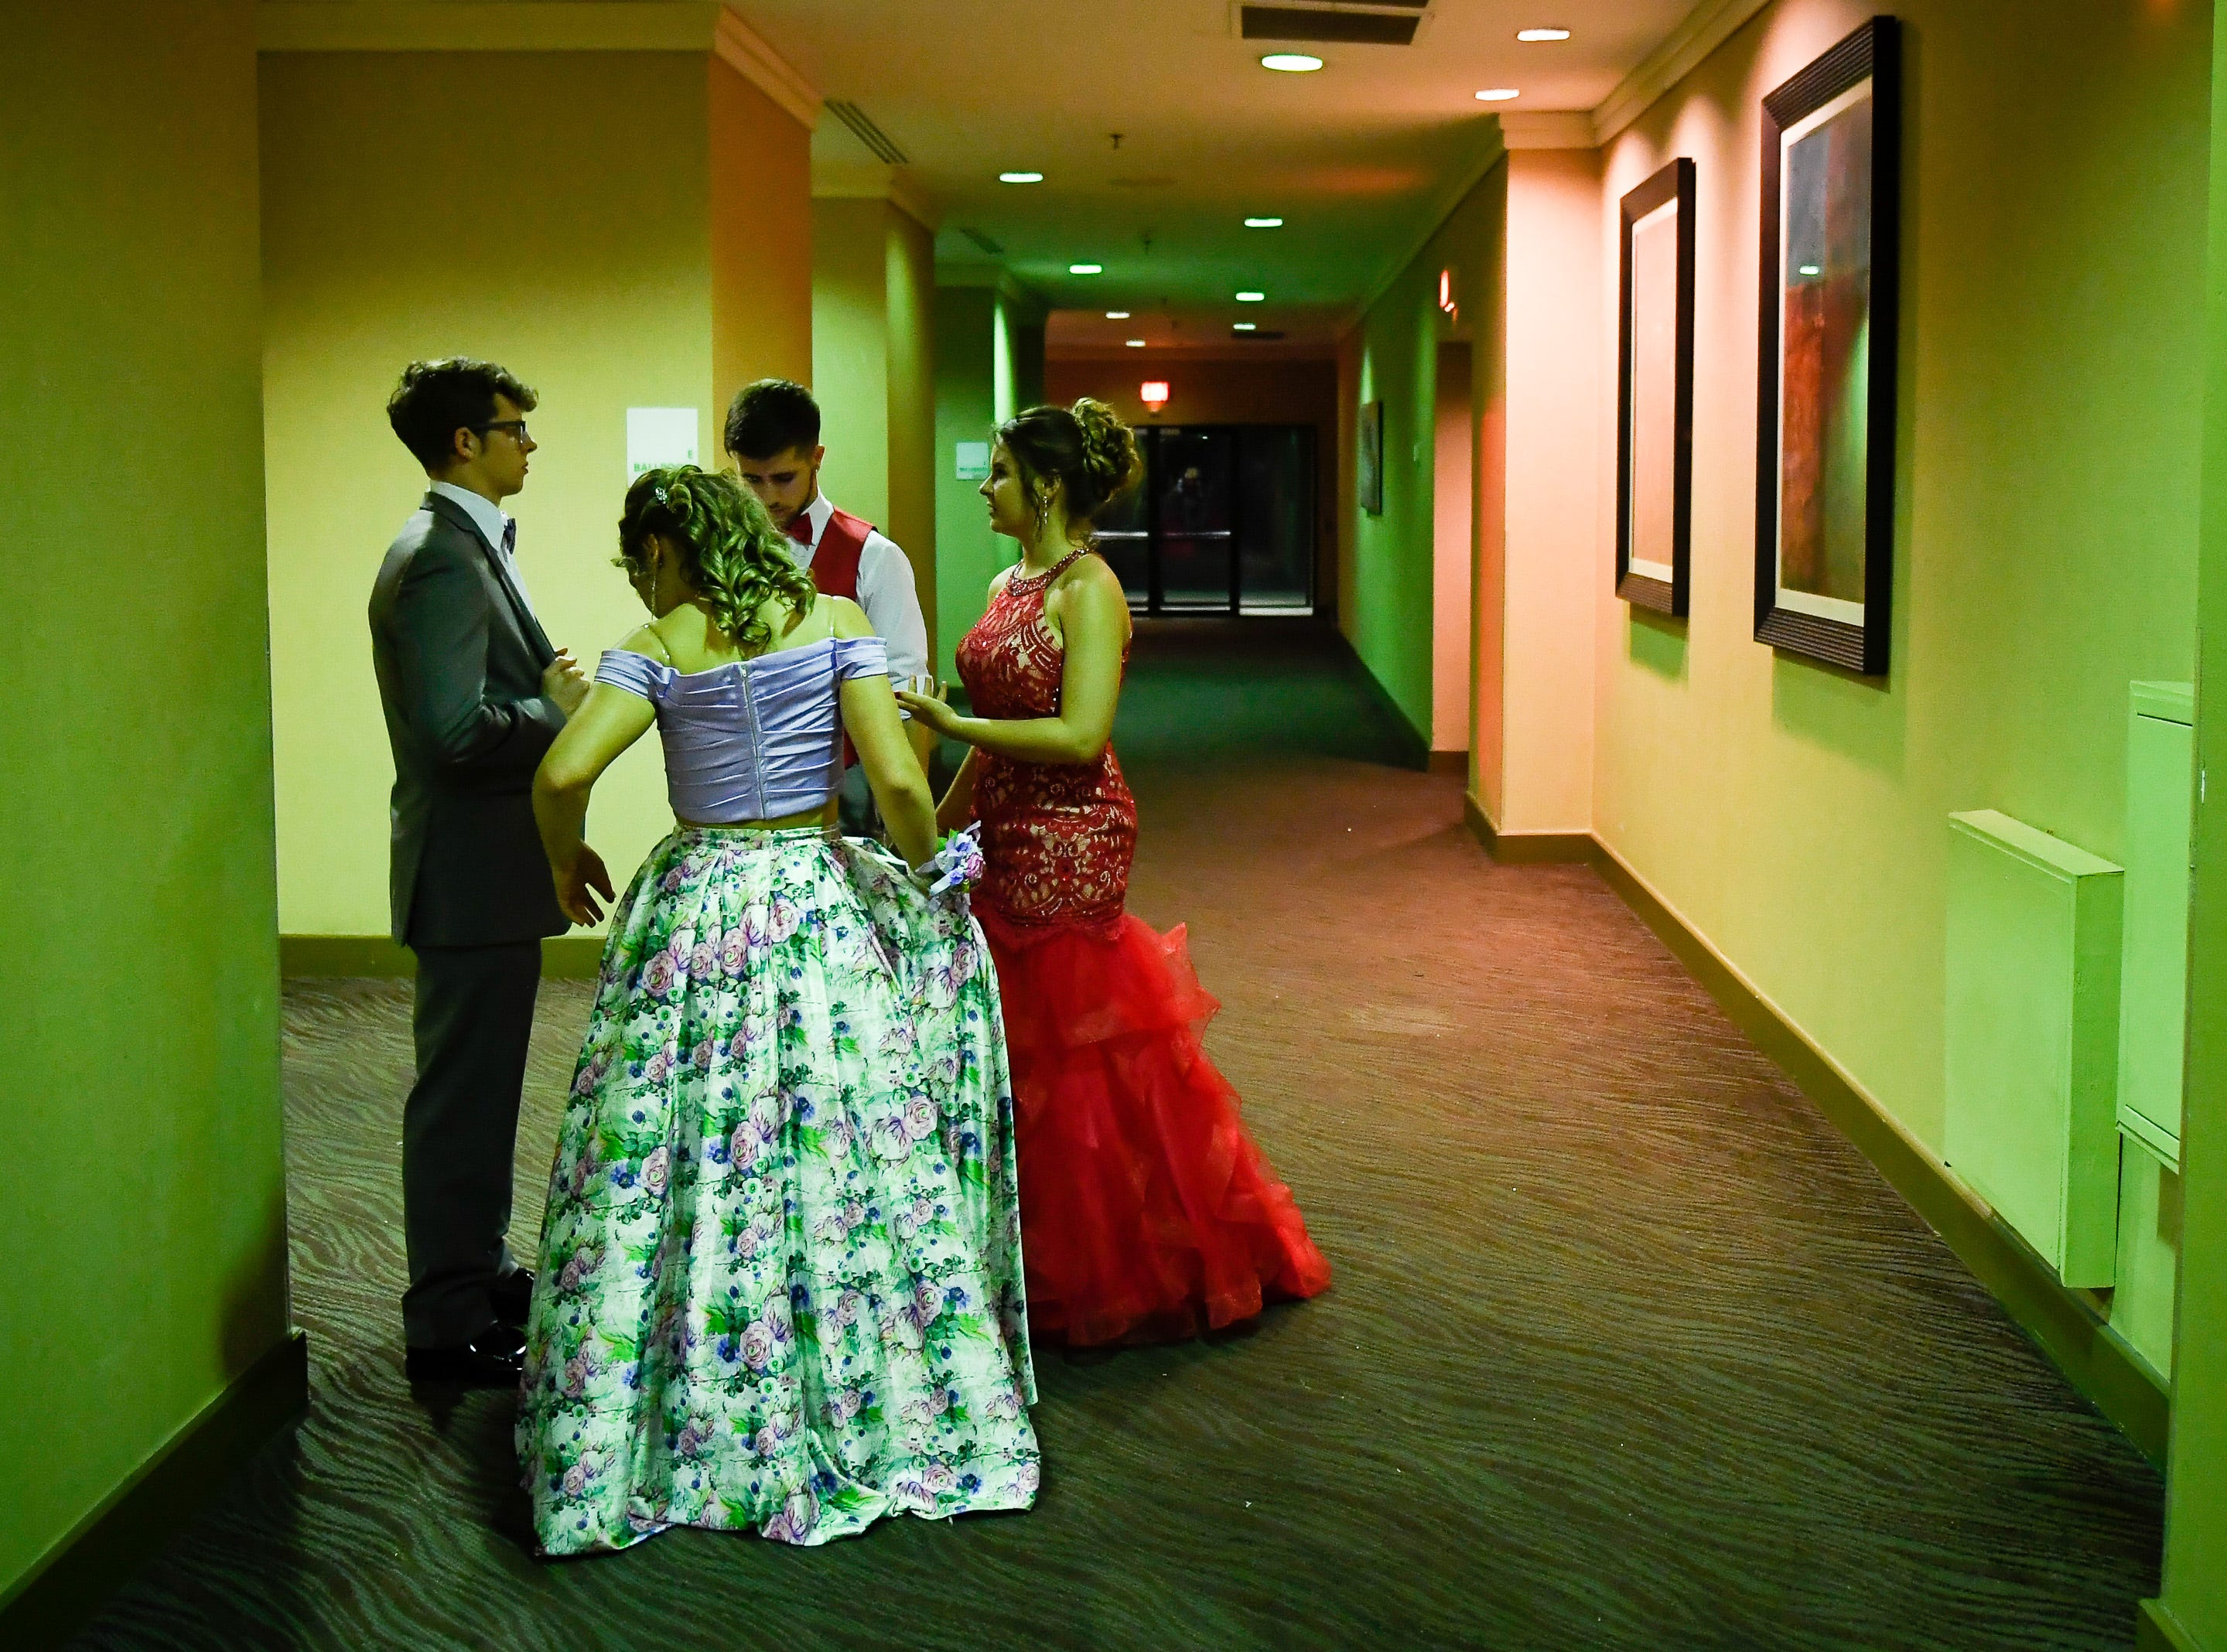 Meeting in the hallway, outside the ballroom, at the Tecumseh High School prom held at the Airport Holiday Inn Friday, April 26, 2019.